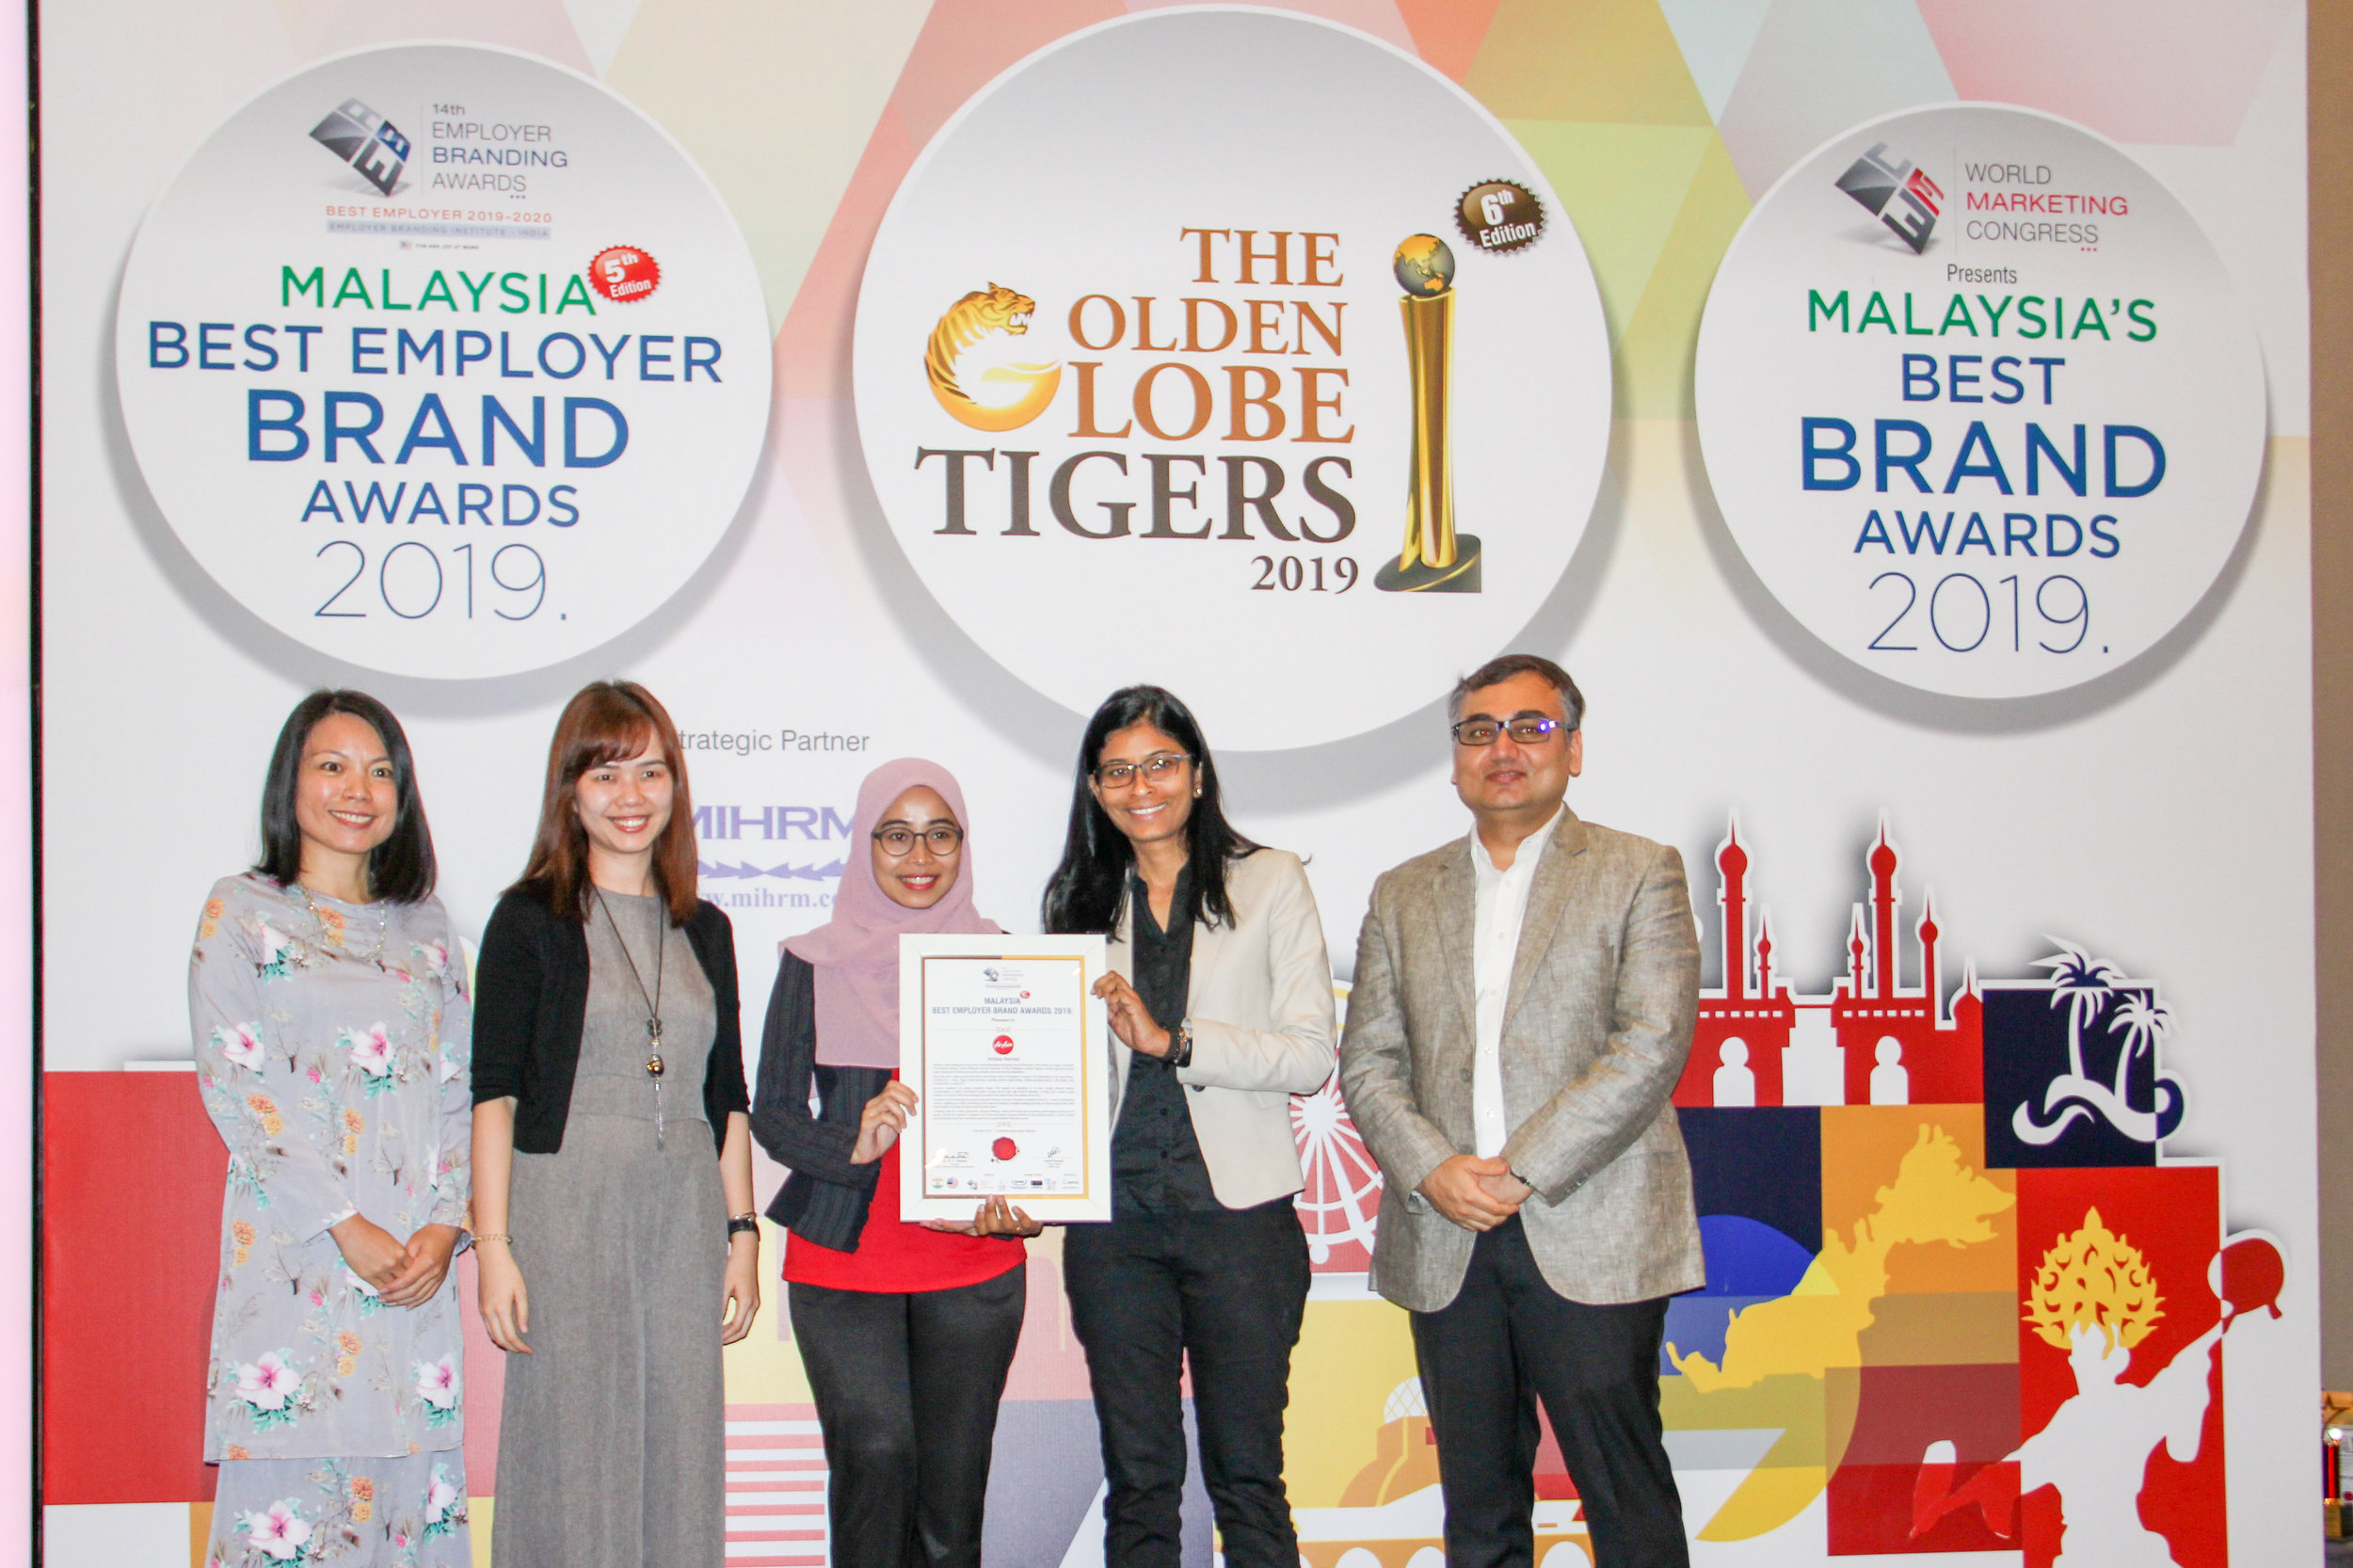 L-R (from second left): AirAsia People Services Manager Mandy Pui, AirAsia People Services Executive Nur Farhana Ibrahim and AirAsia Head of Culture Renuka Kunathevan accepting the award